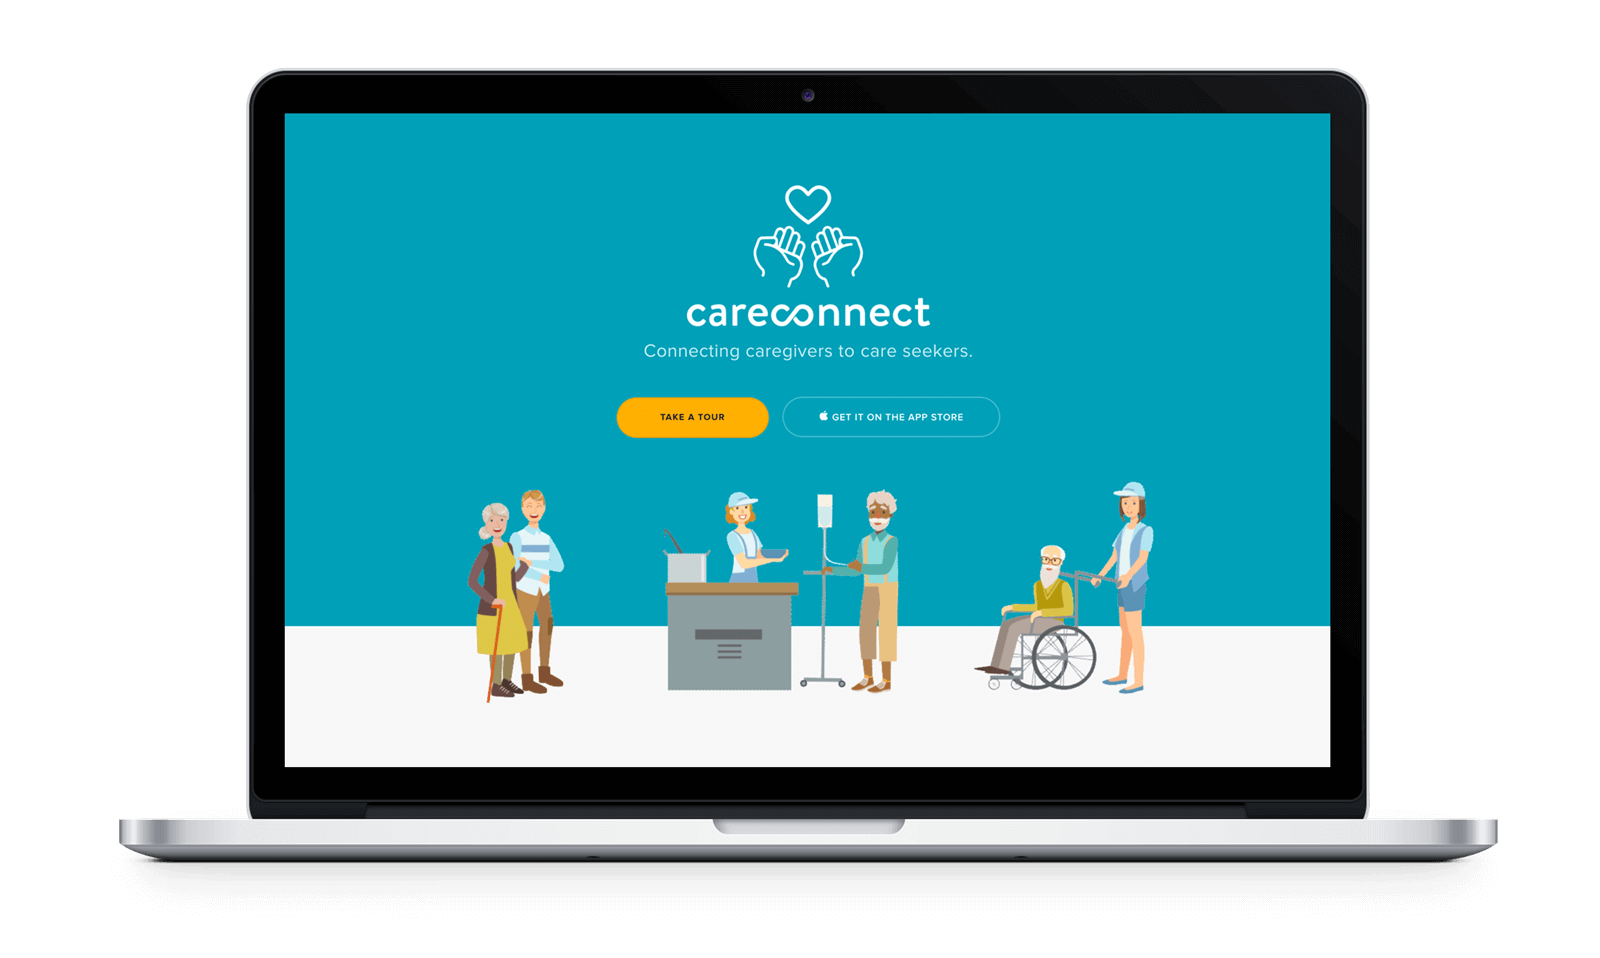 careconnect-marketing-site